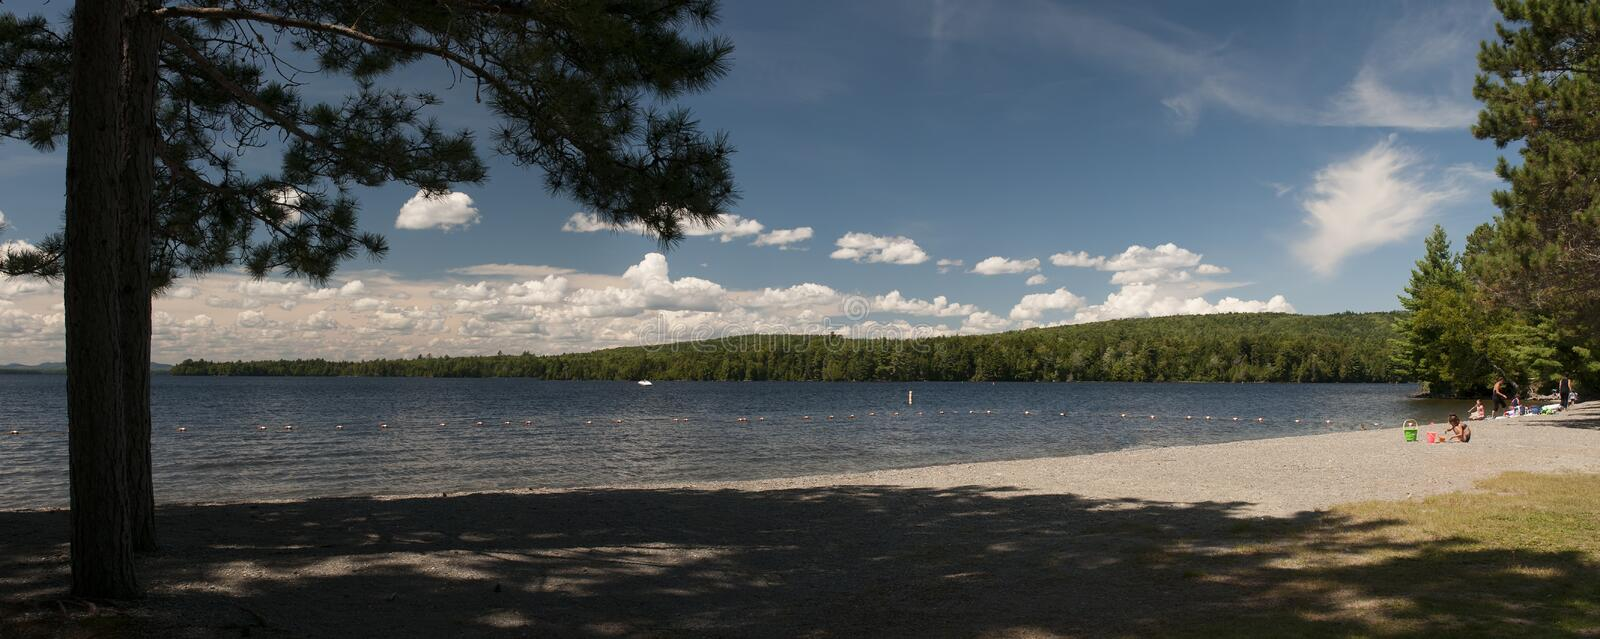 Download Summer scenic lake beach stock image. Image of beach - 32800763